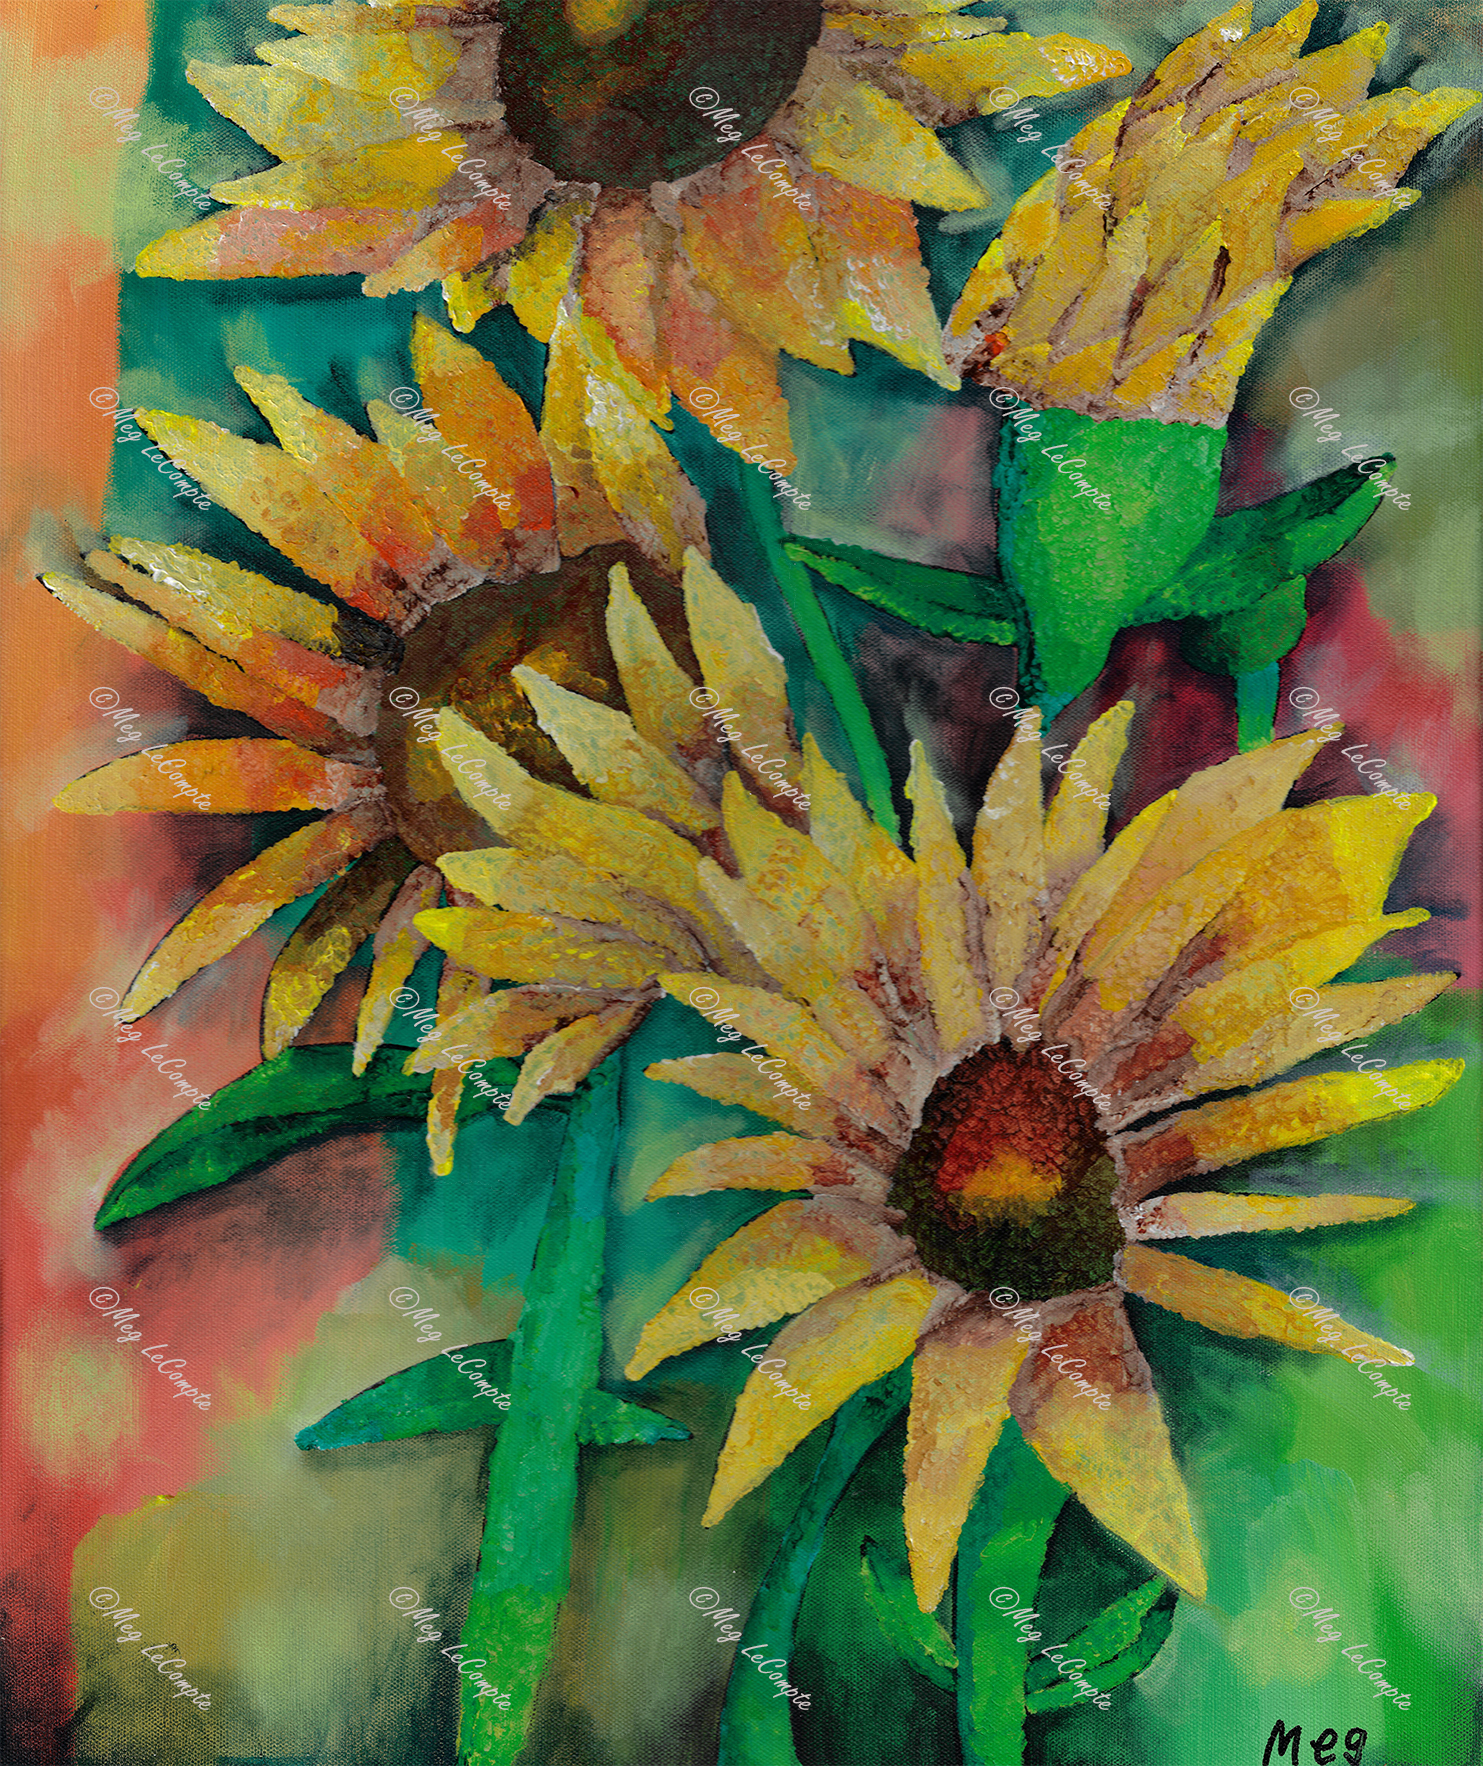 Yellow Sunflowers with Green Stems